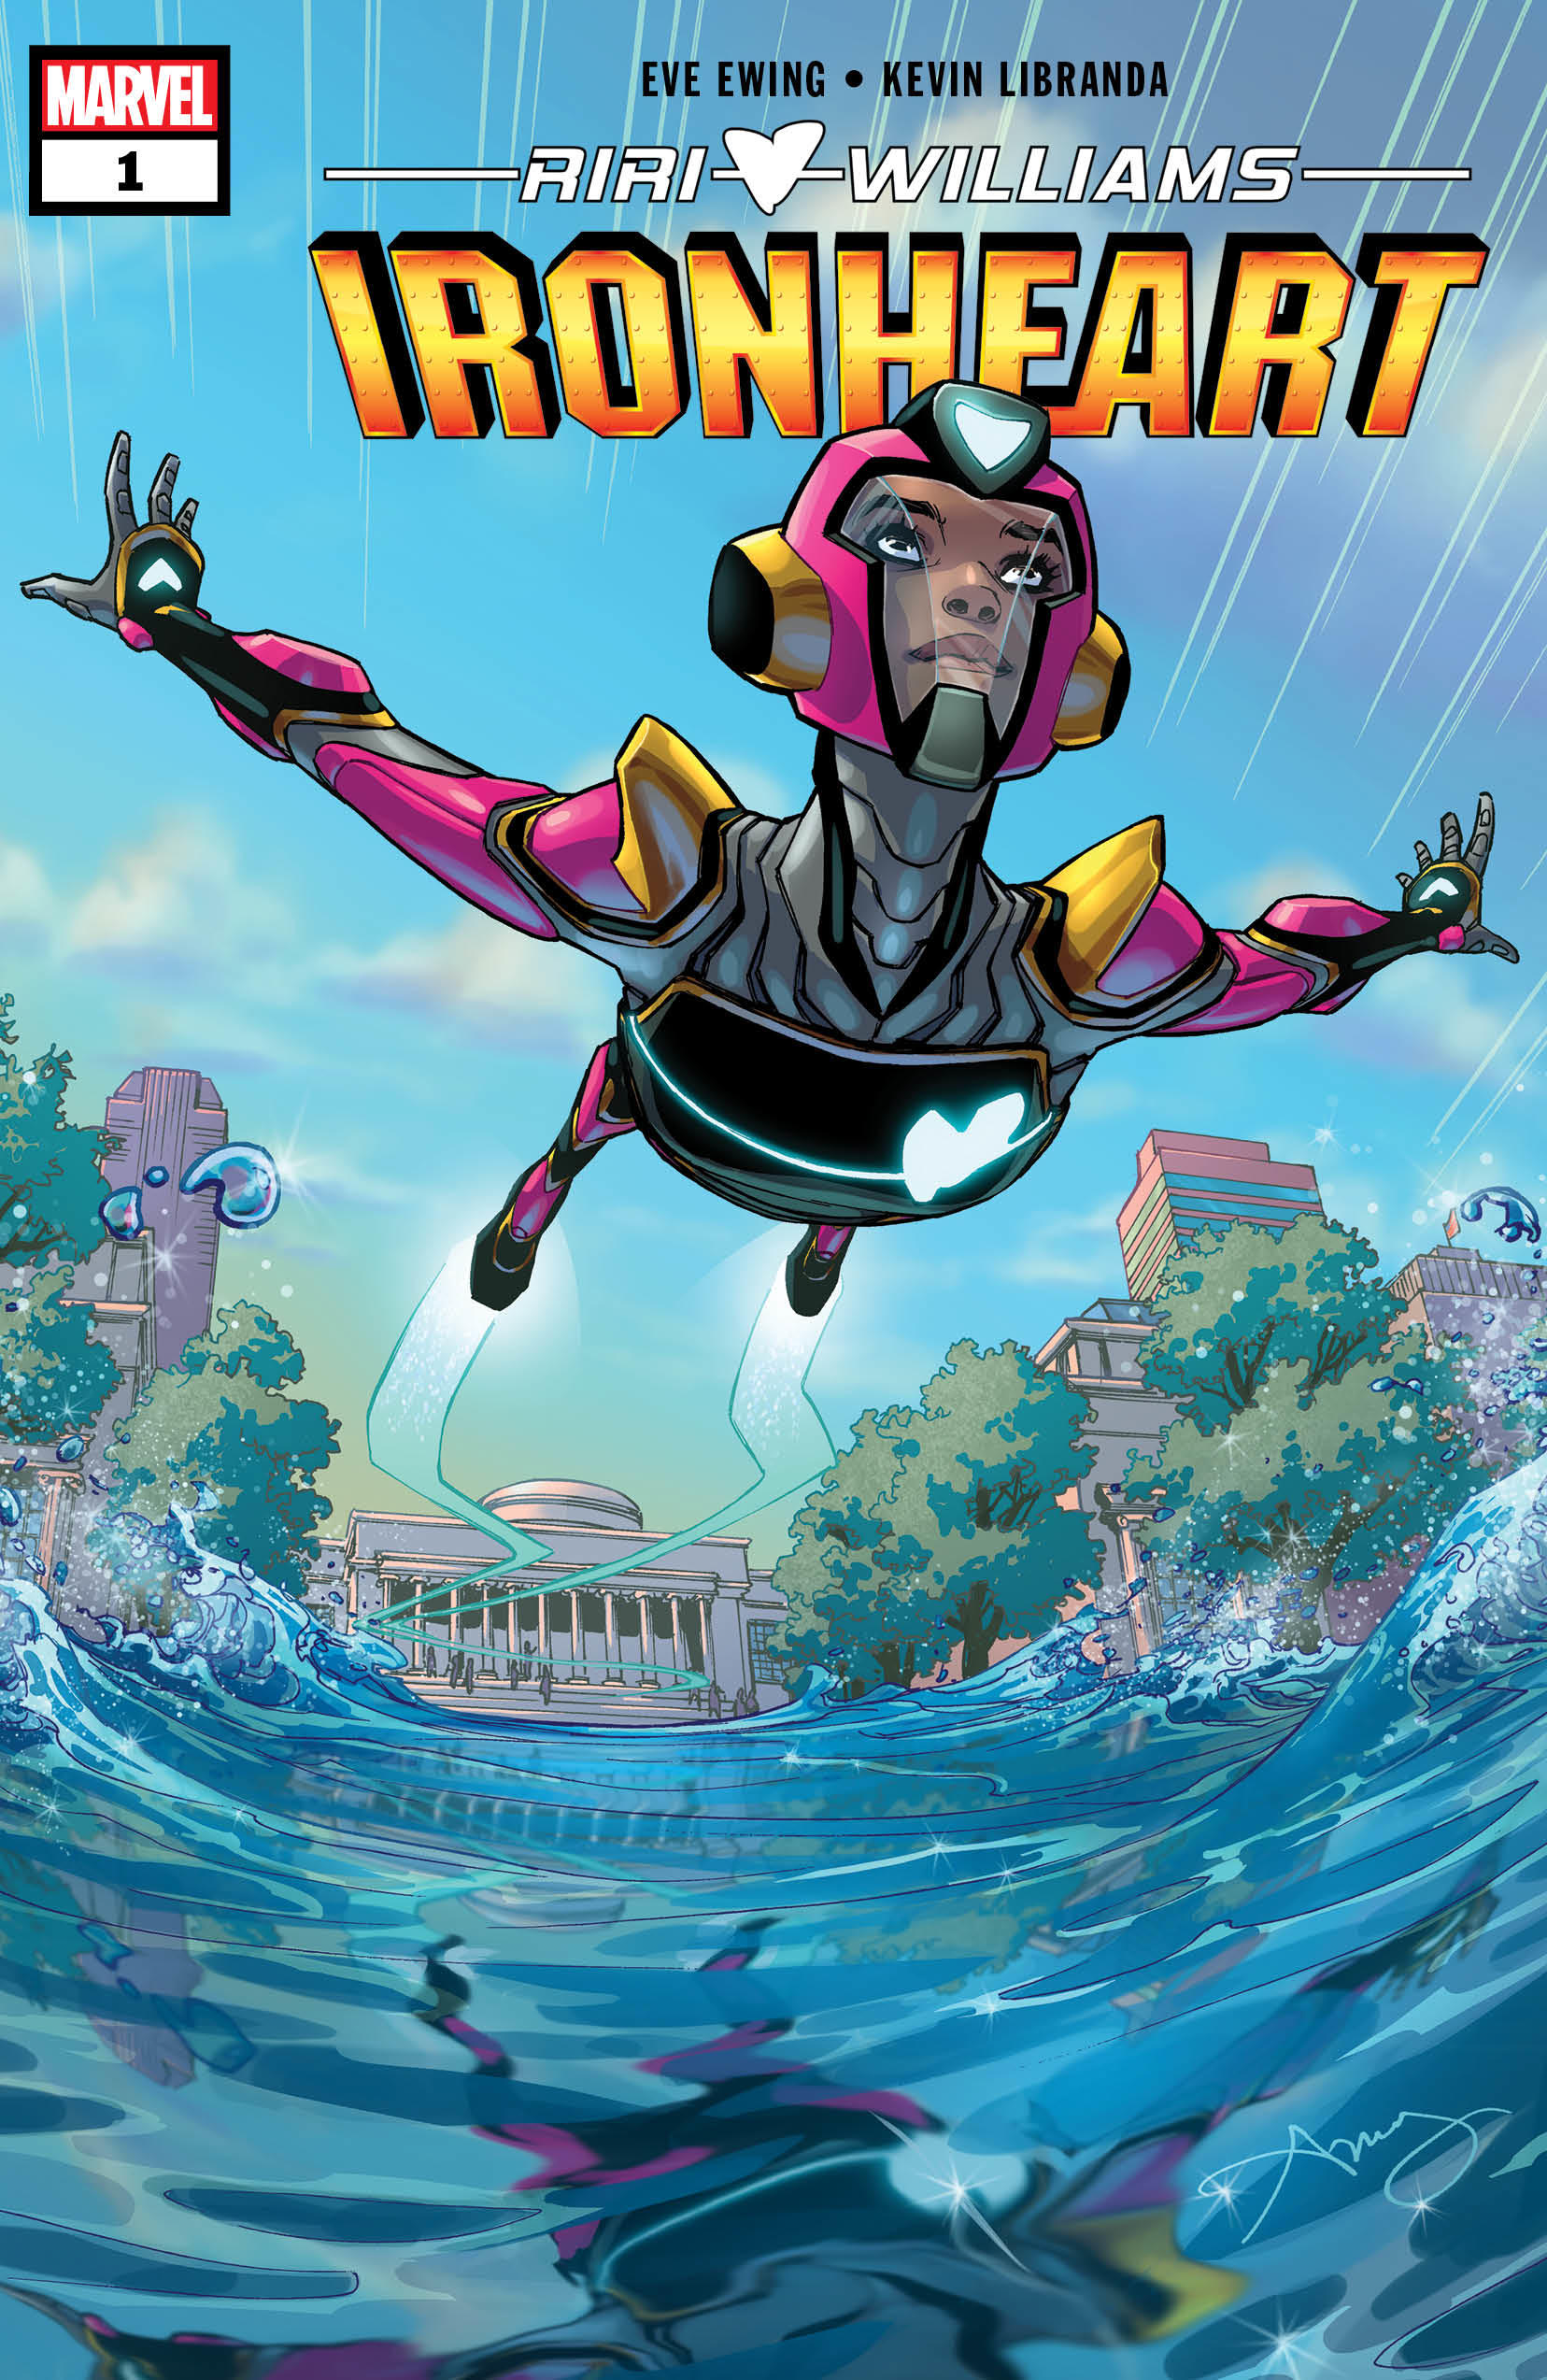 Ironheart #1. Cover by Amy Reeder.